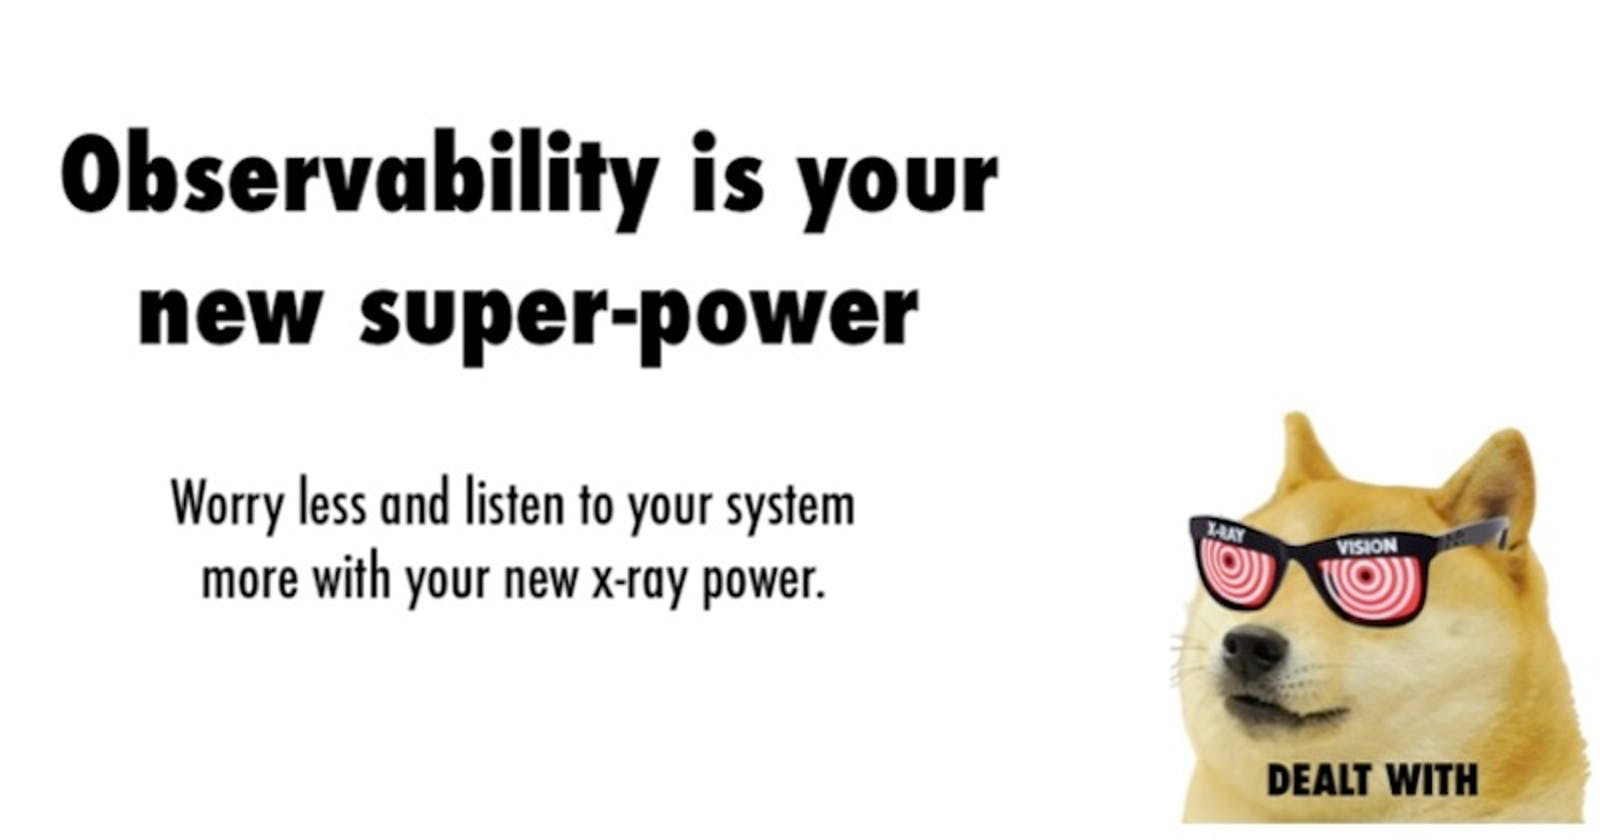 Observability is your new super-power